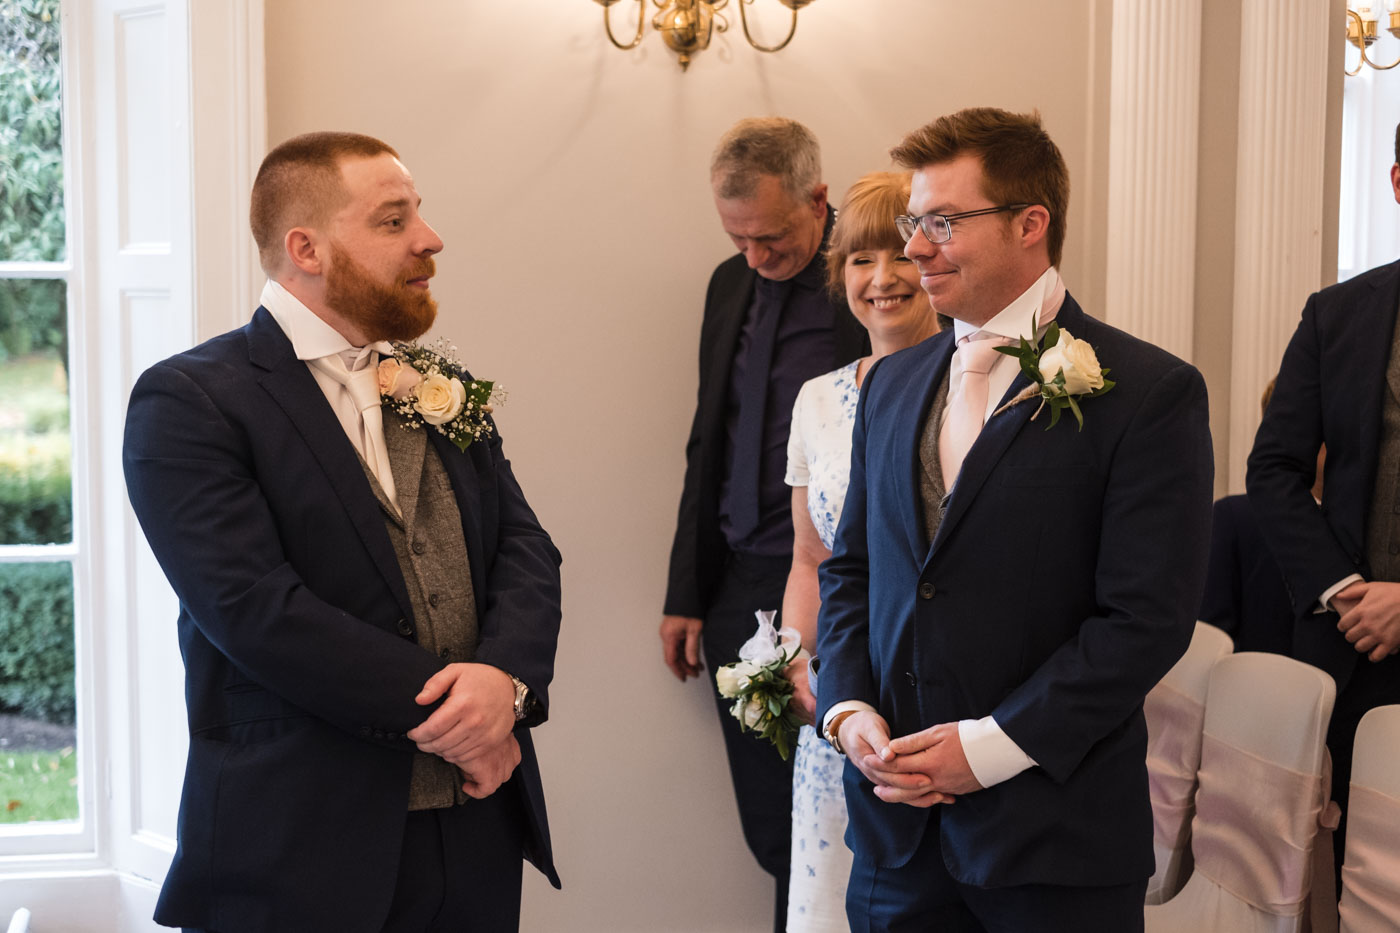 groom and best man stood waiting for the bridal party